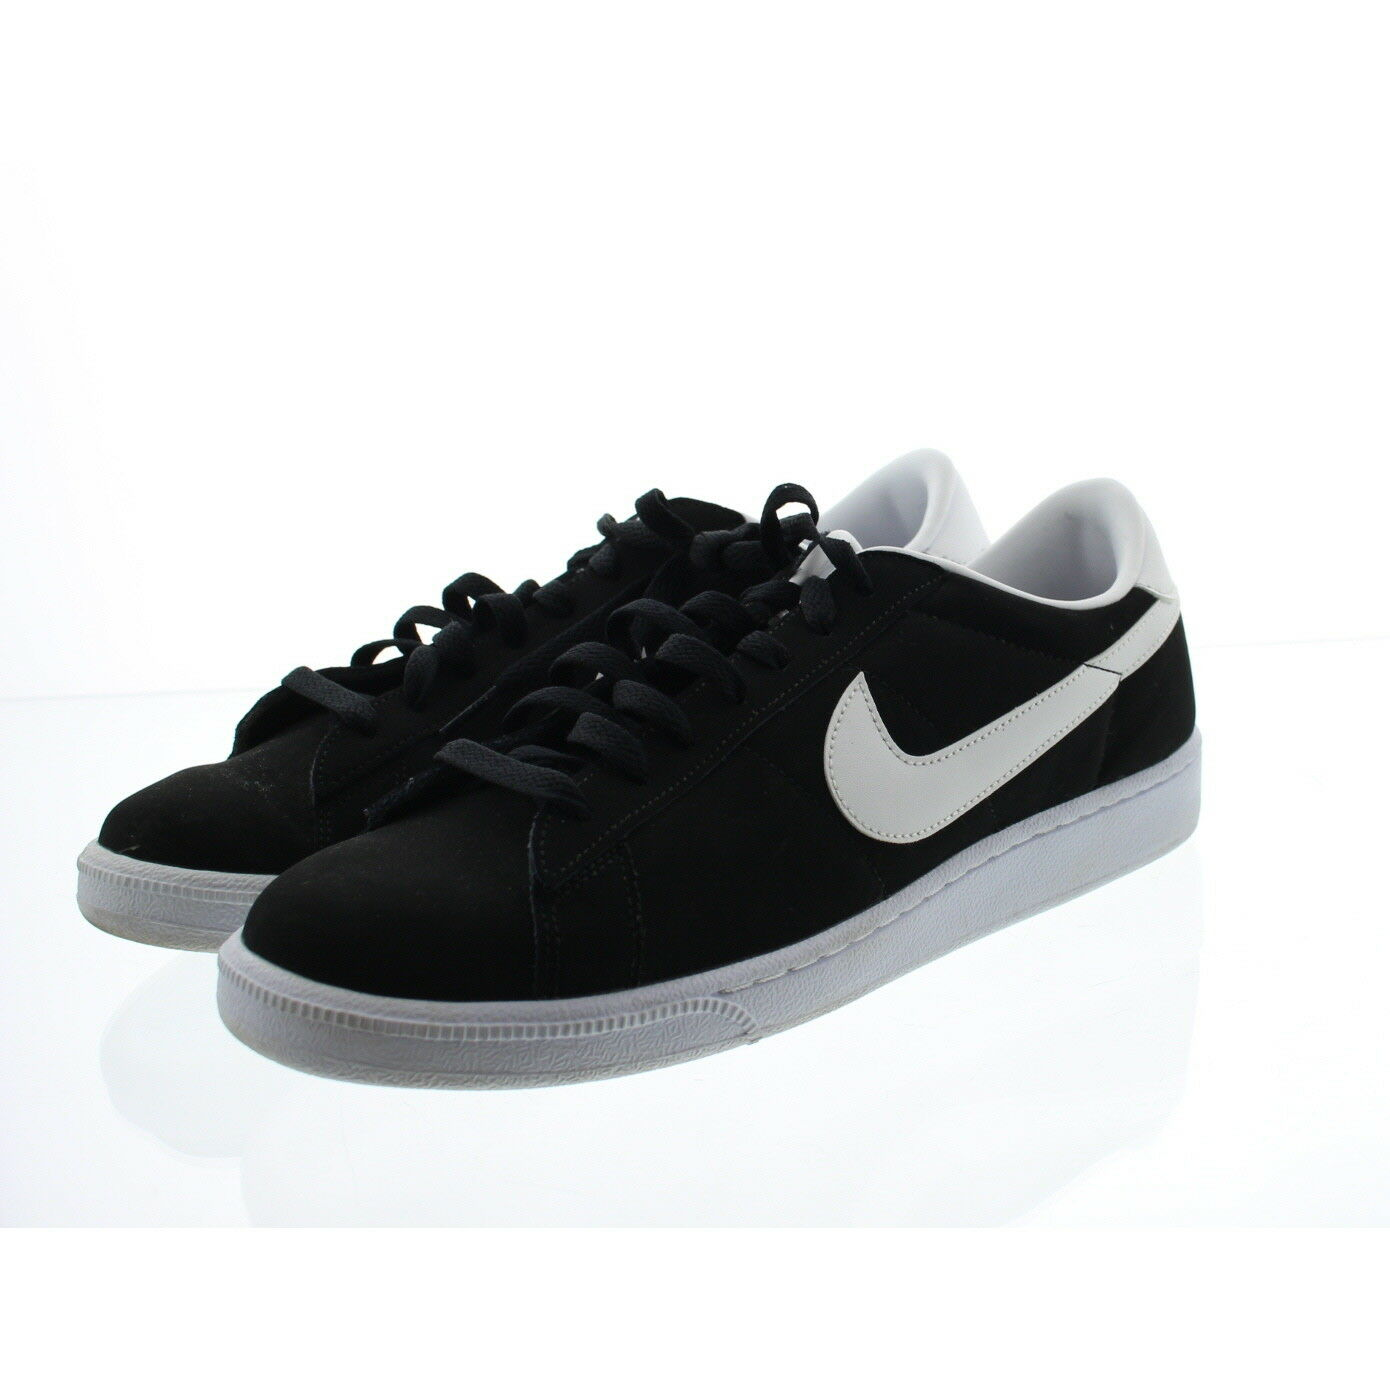 Nike 312495 Mens Tennis Classic Leather Fashion Low Top Shoes Sneakers Comfortable and good-looking